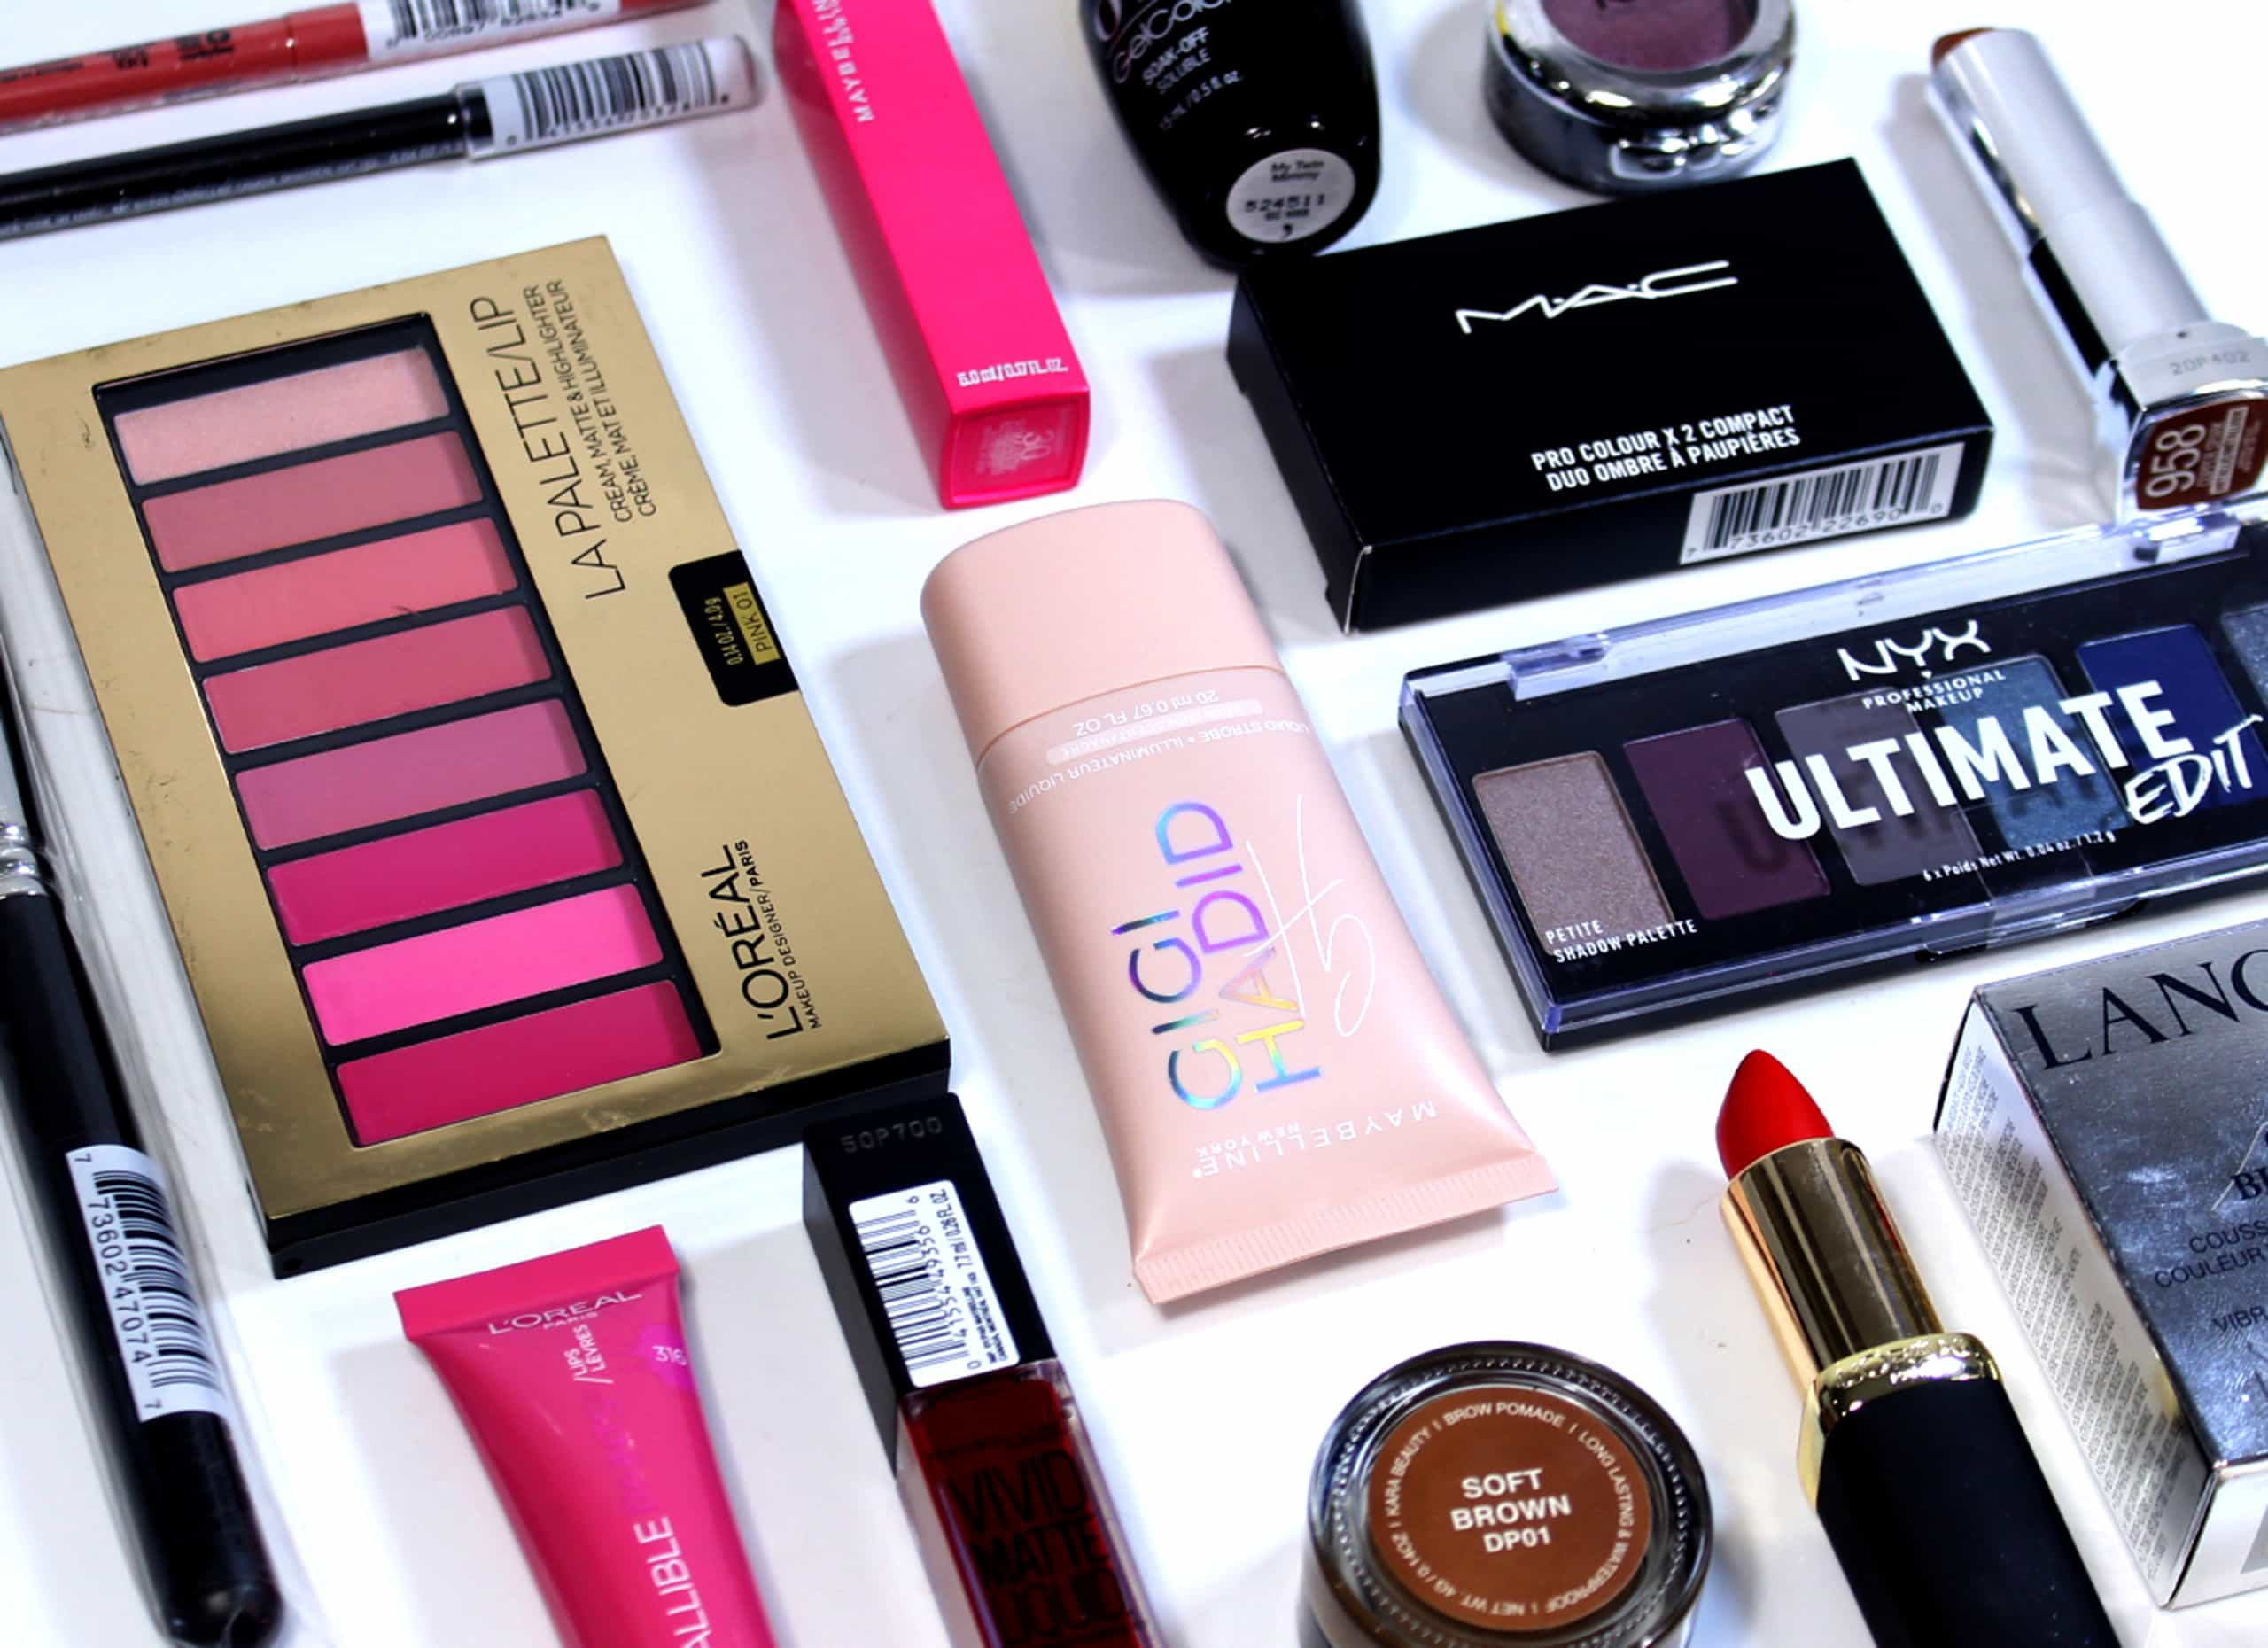 A collection of different cosmetics products from American makeup brands on a white background